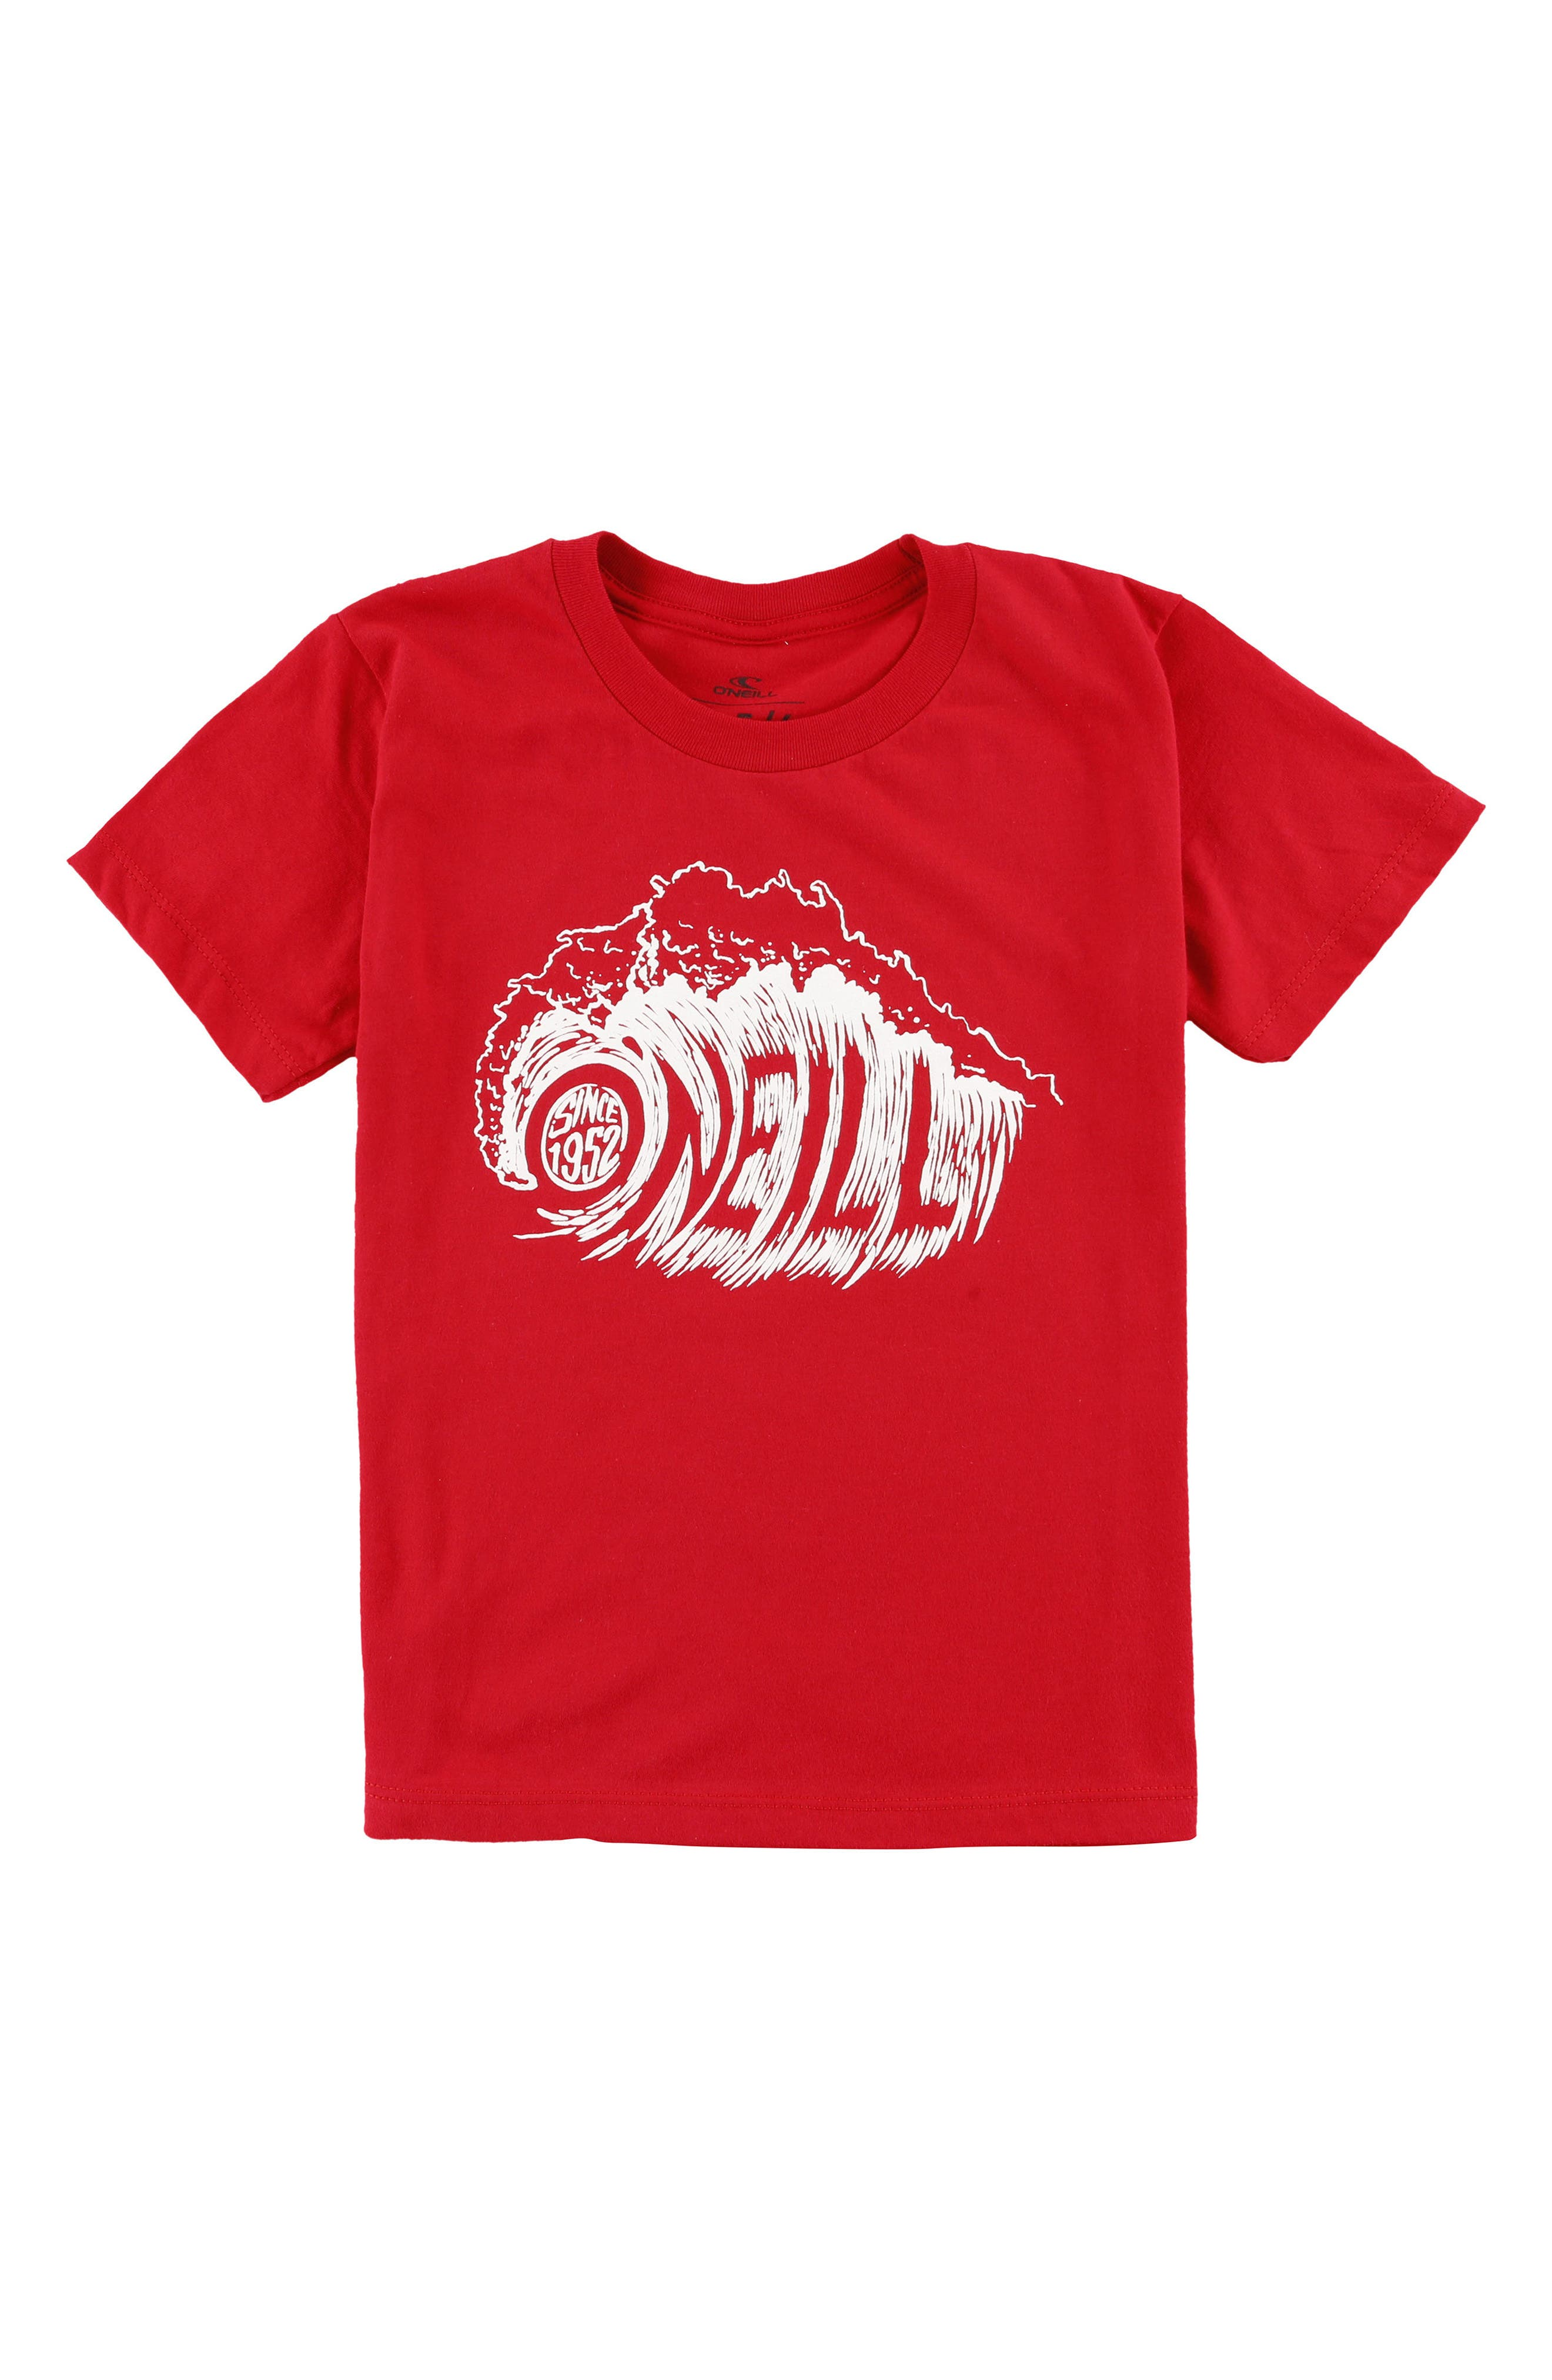 Sandspit Graphic T-Shirt,                         Main,                         color, Heather Red